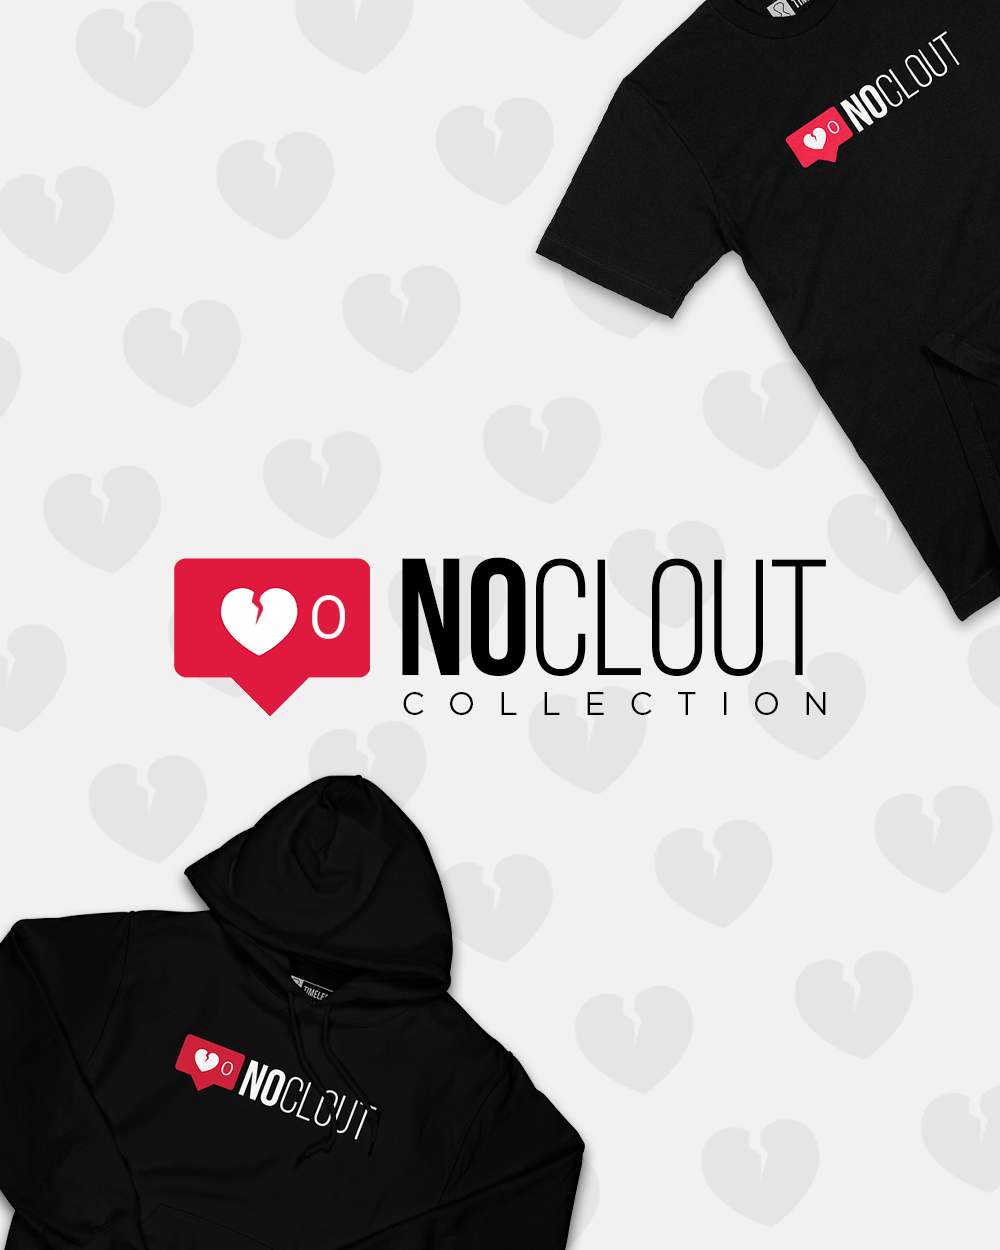 NOCLOUT COLLECTION